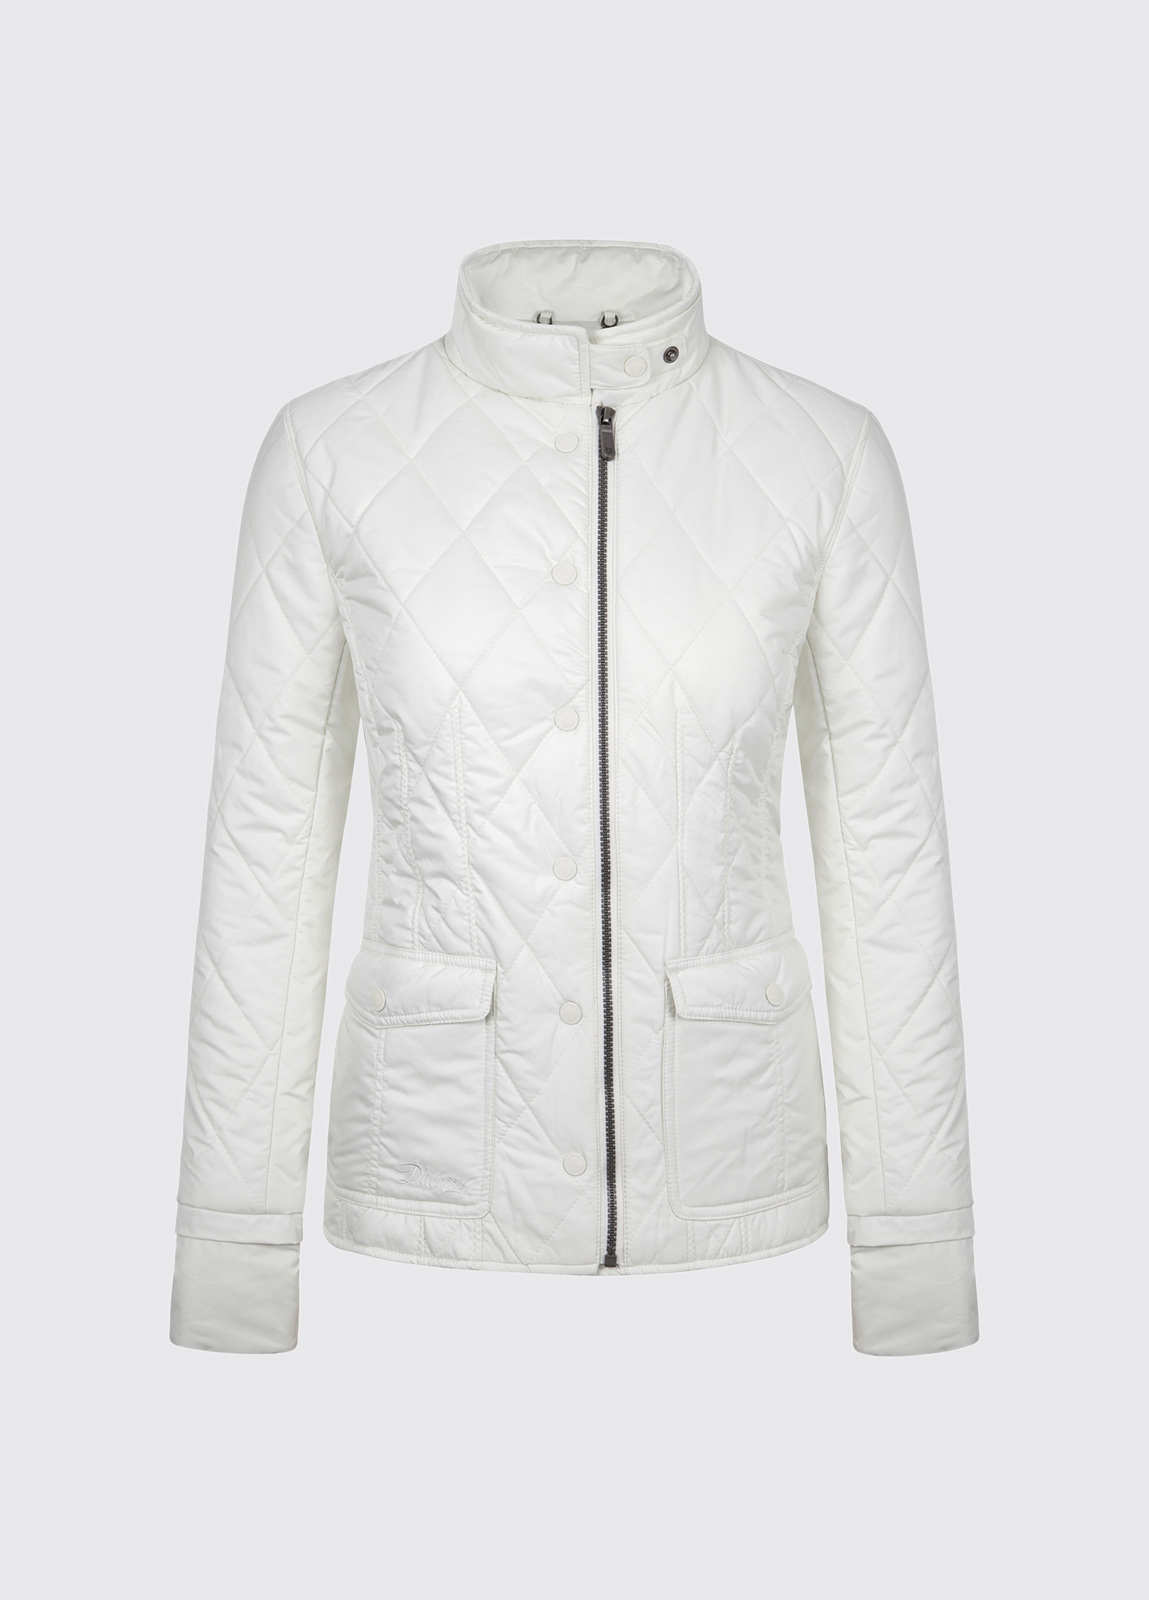 Carra Women's Quilted Jacket - Sail White